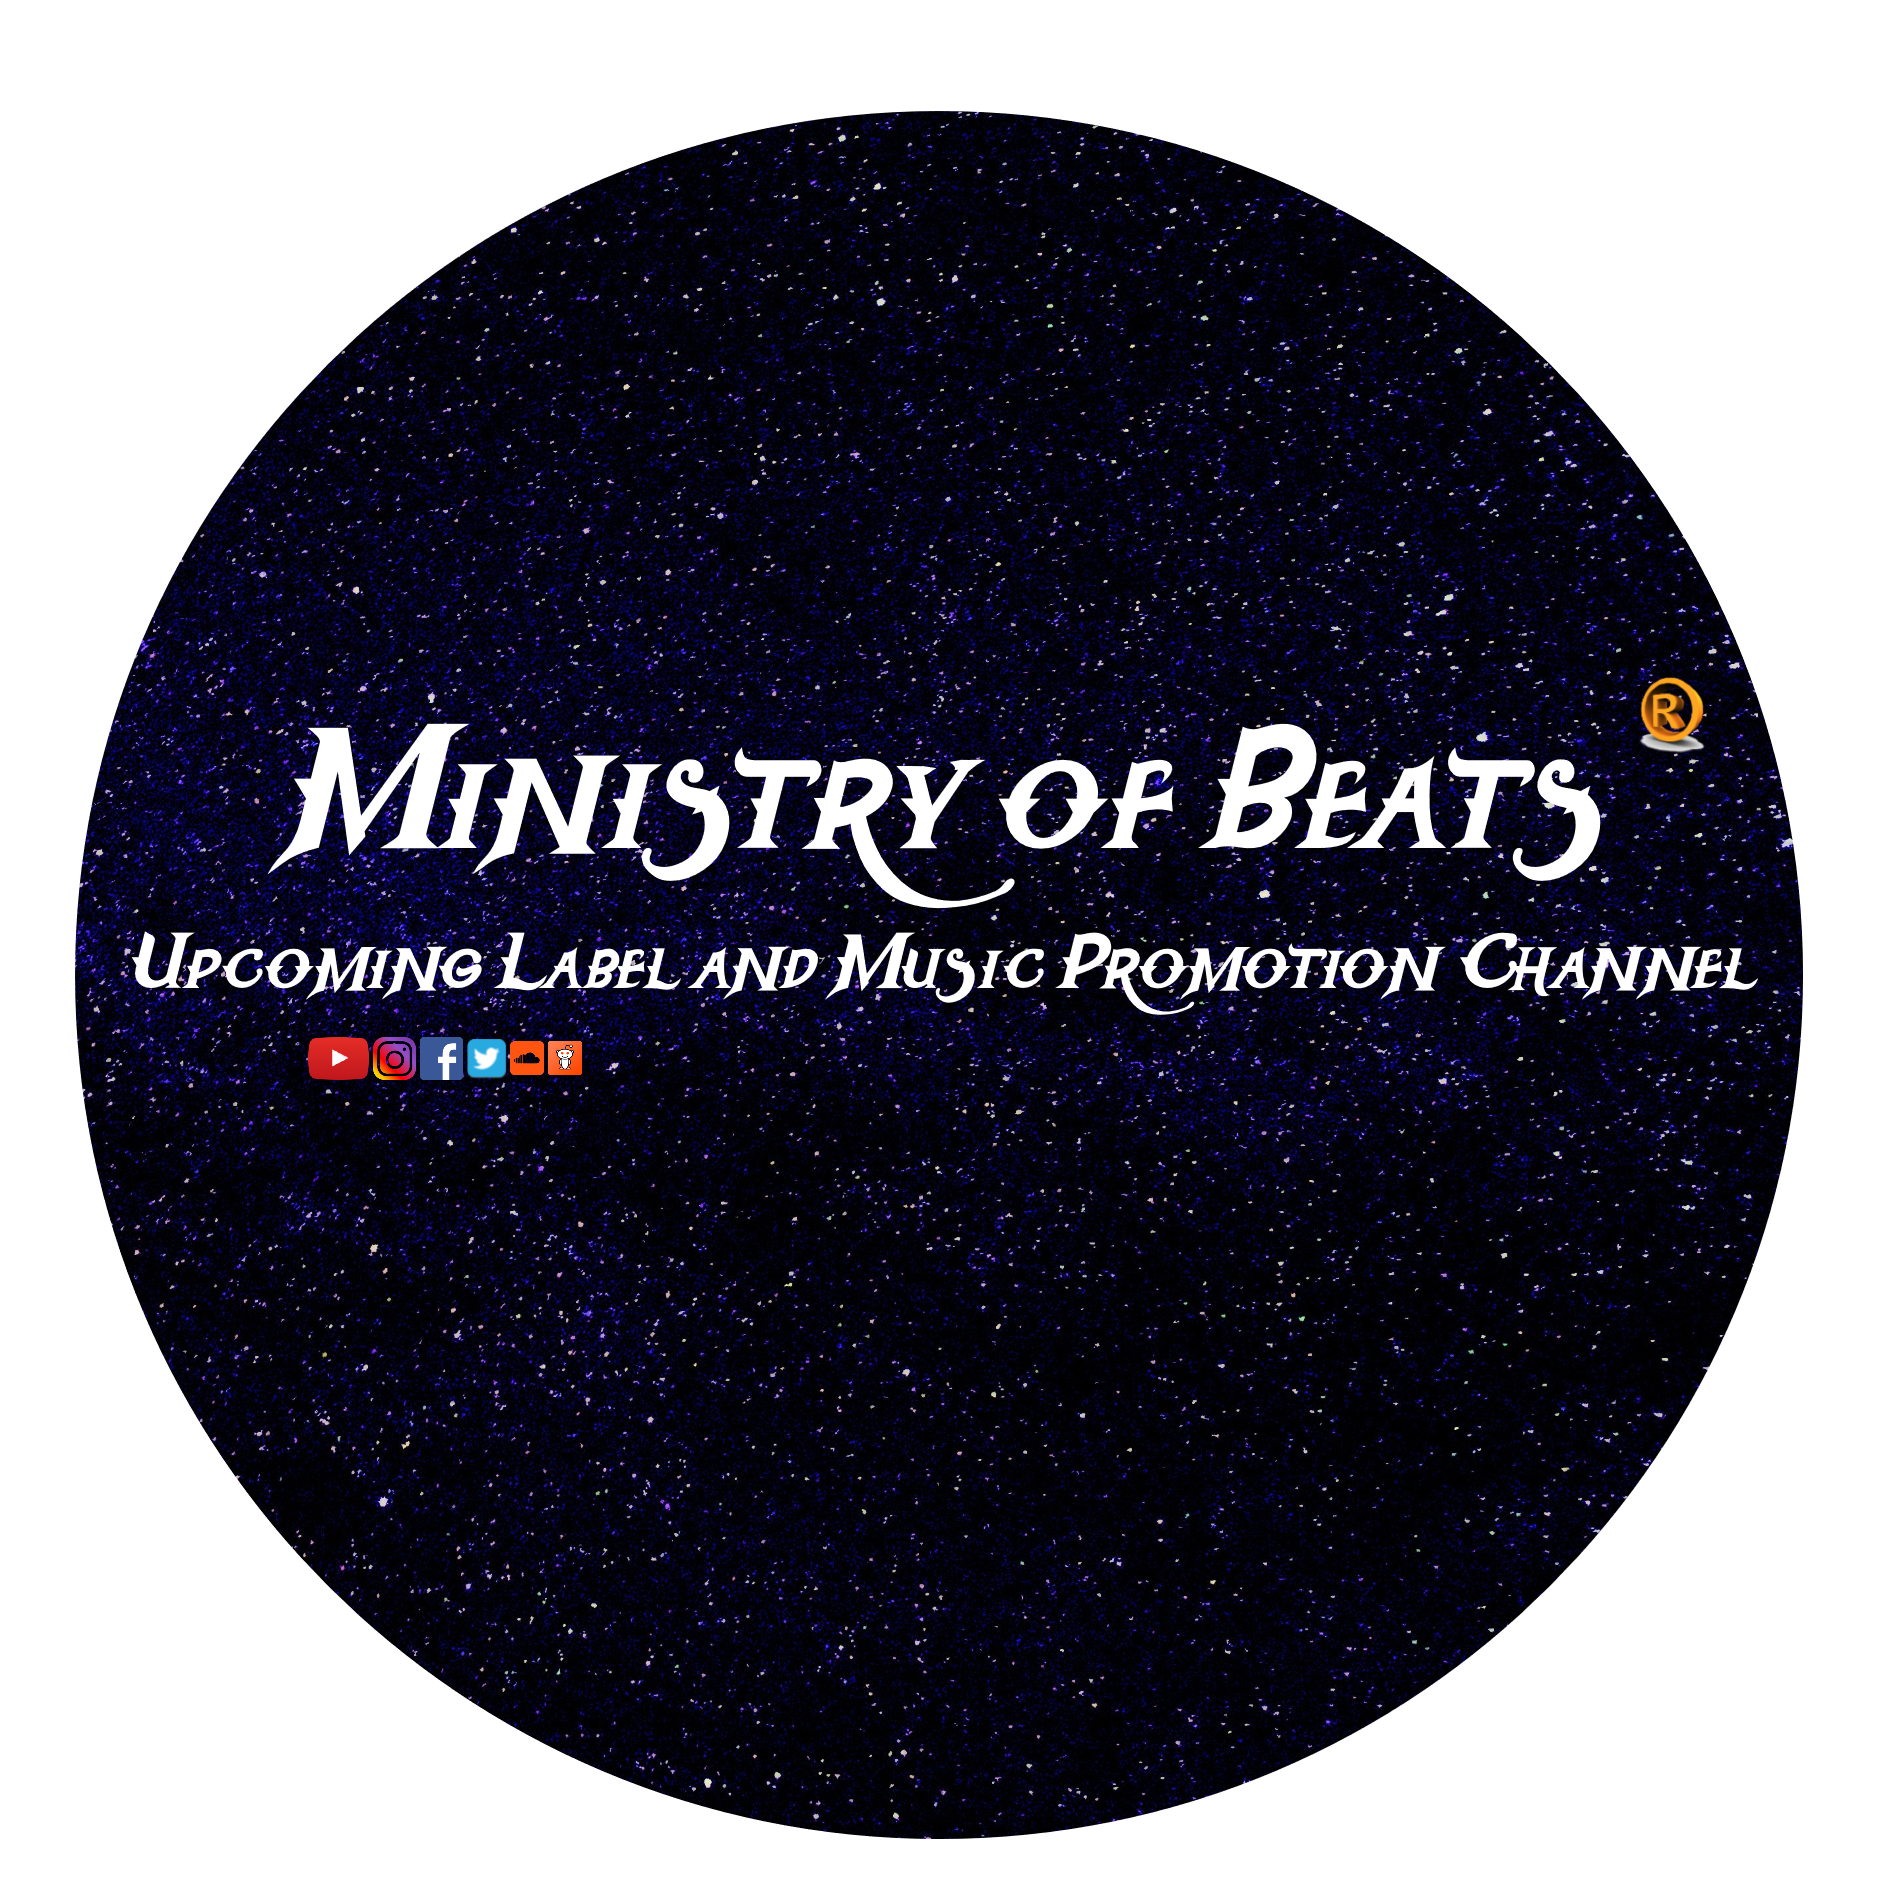 Ministry of Beats